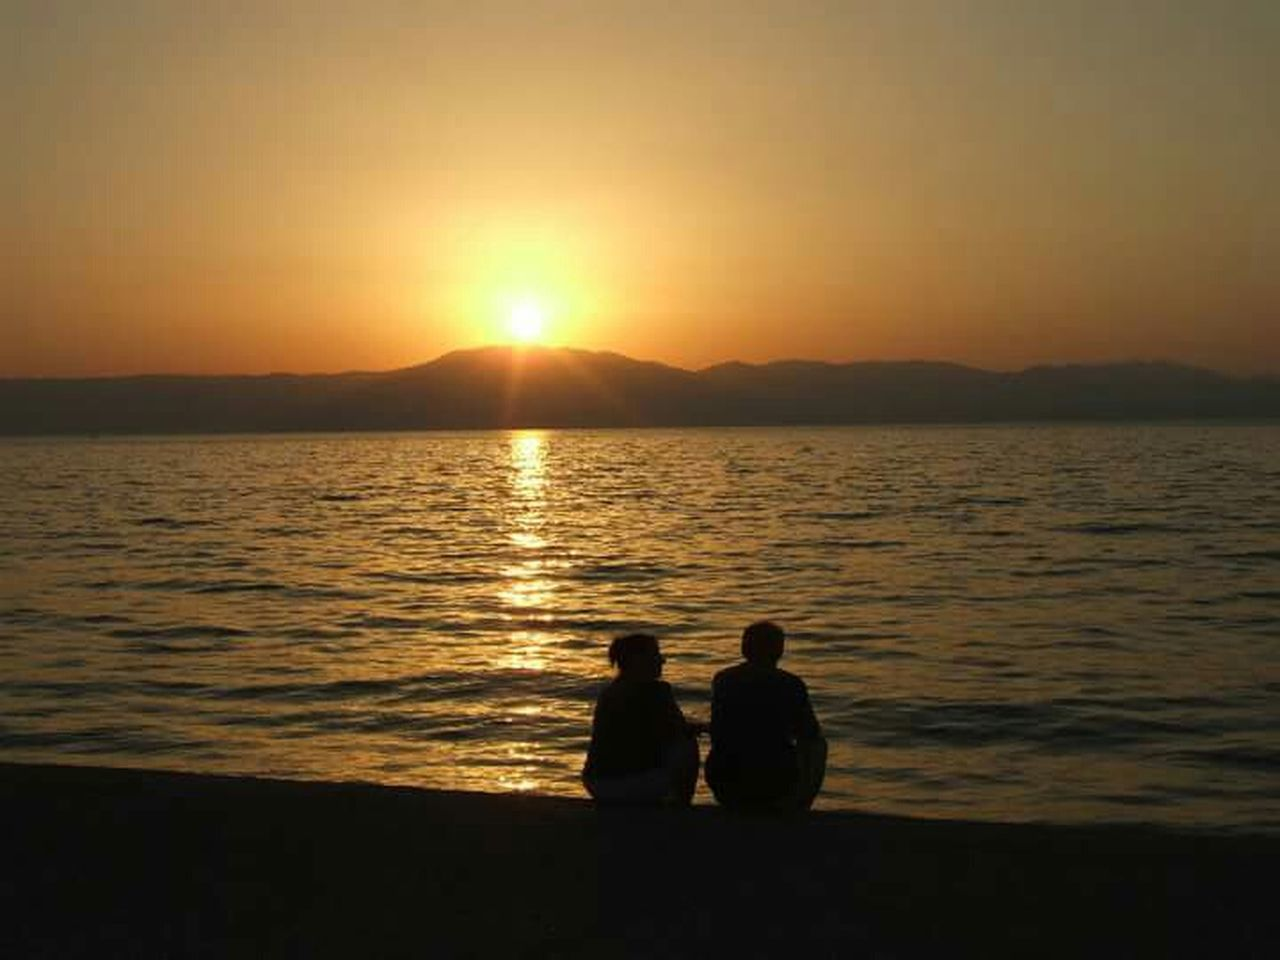 sunset, two people, silhouette, togetherness, beauty in nature, sun, scenics, nature, tranquil scene, tranquility, water, sitting, idyllic, men, sea, sunlight, real people, sky, bonding, couple - relationship, women, mountain, friendship, outdoors, clear sky, people